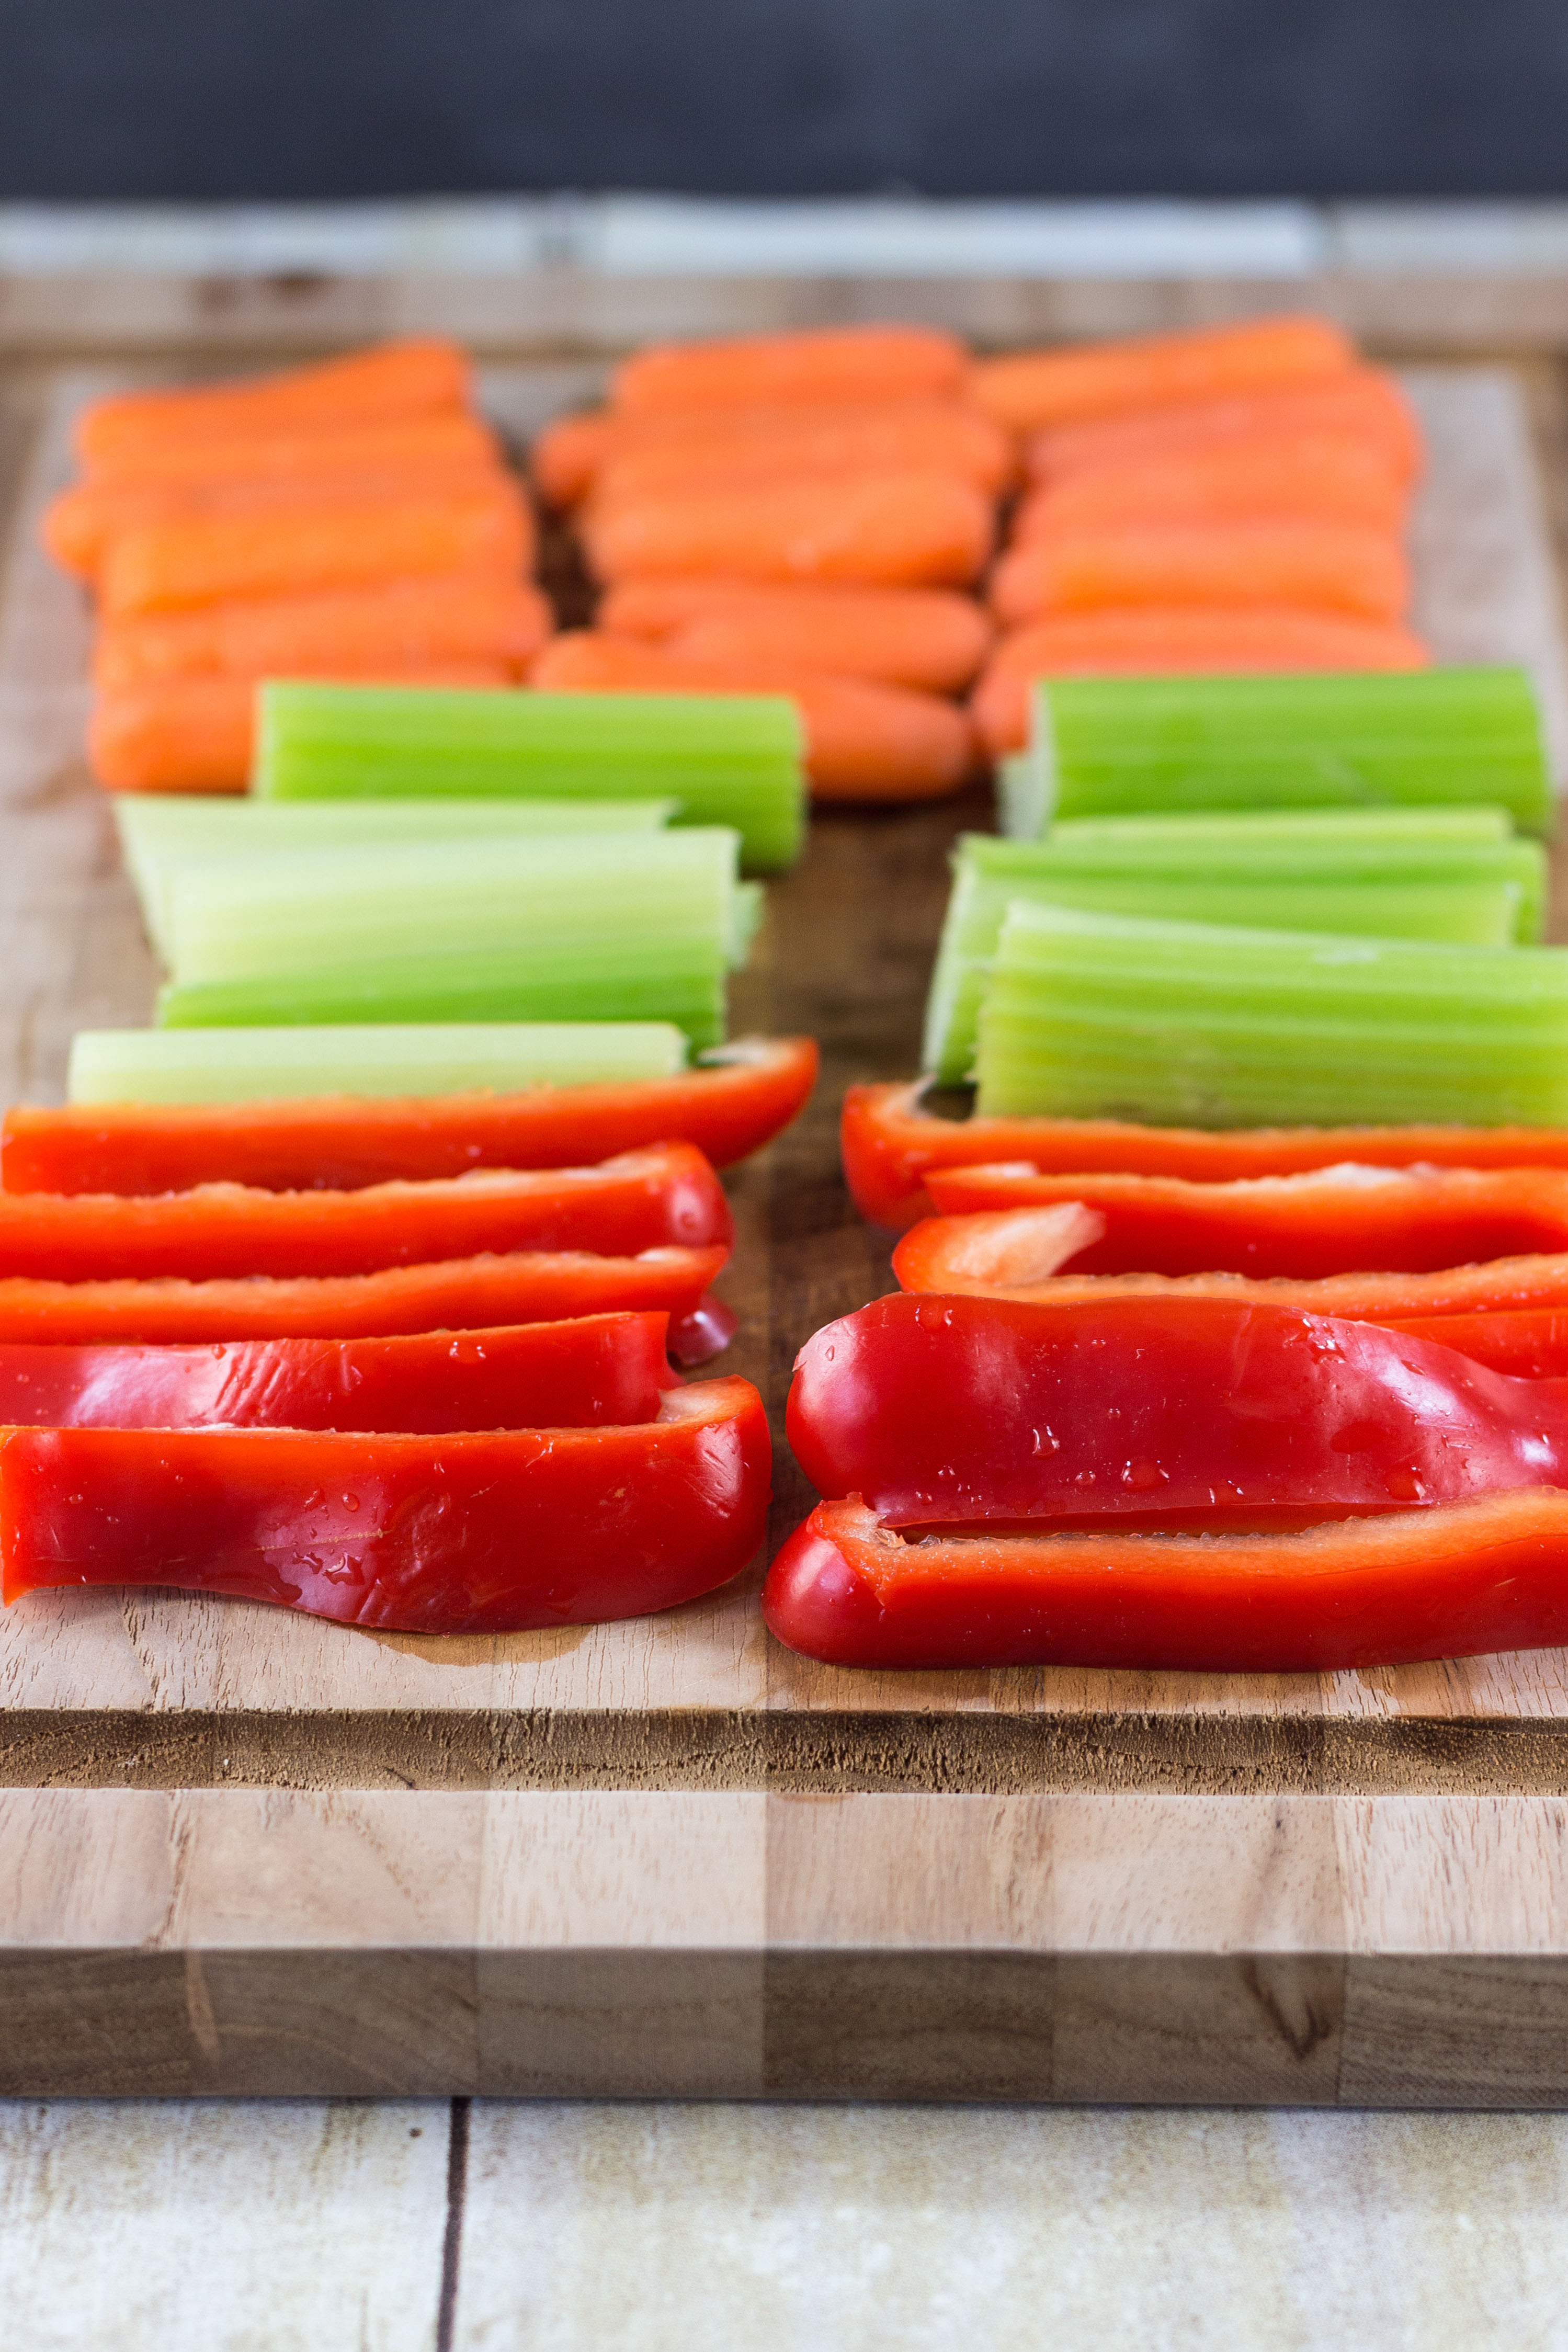 Chopped veggies ready to pair with homemade hummus. Click through for a fabulous white bean hummus recipe! | https://www.roseclearfield.com